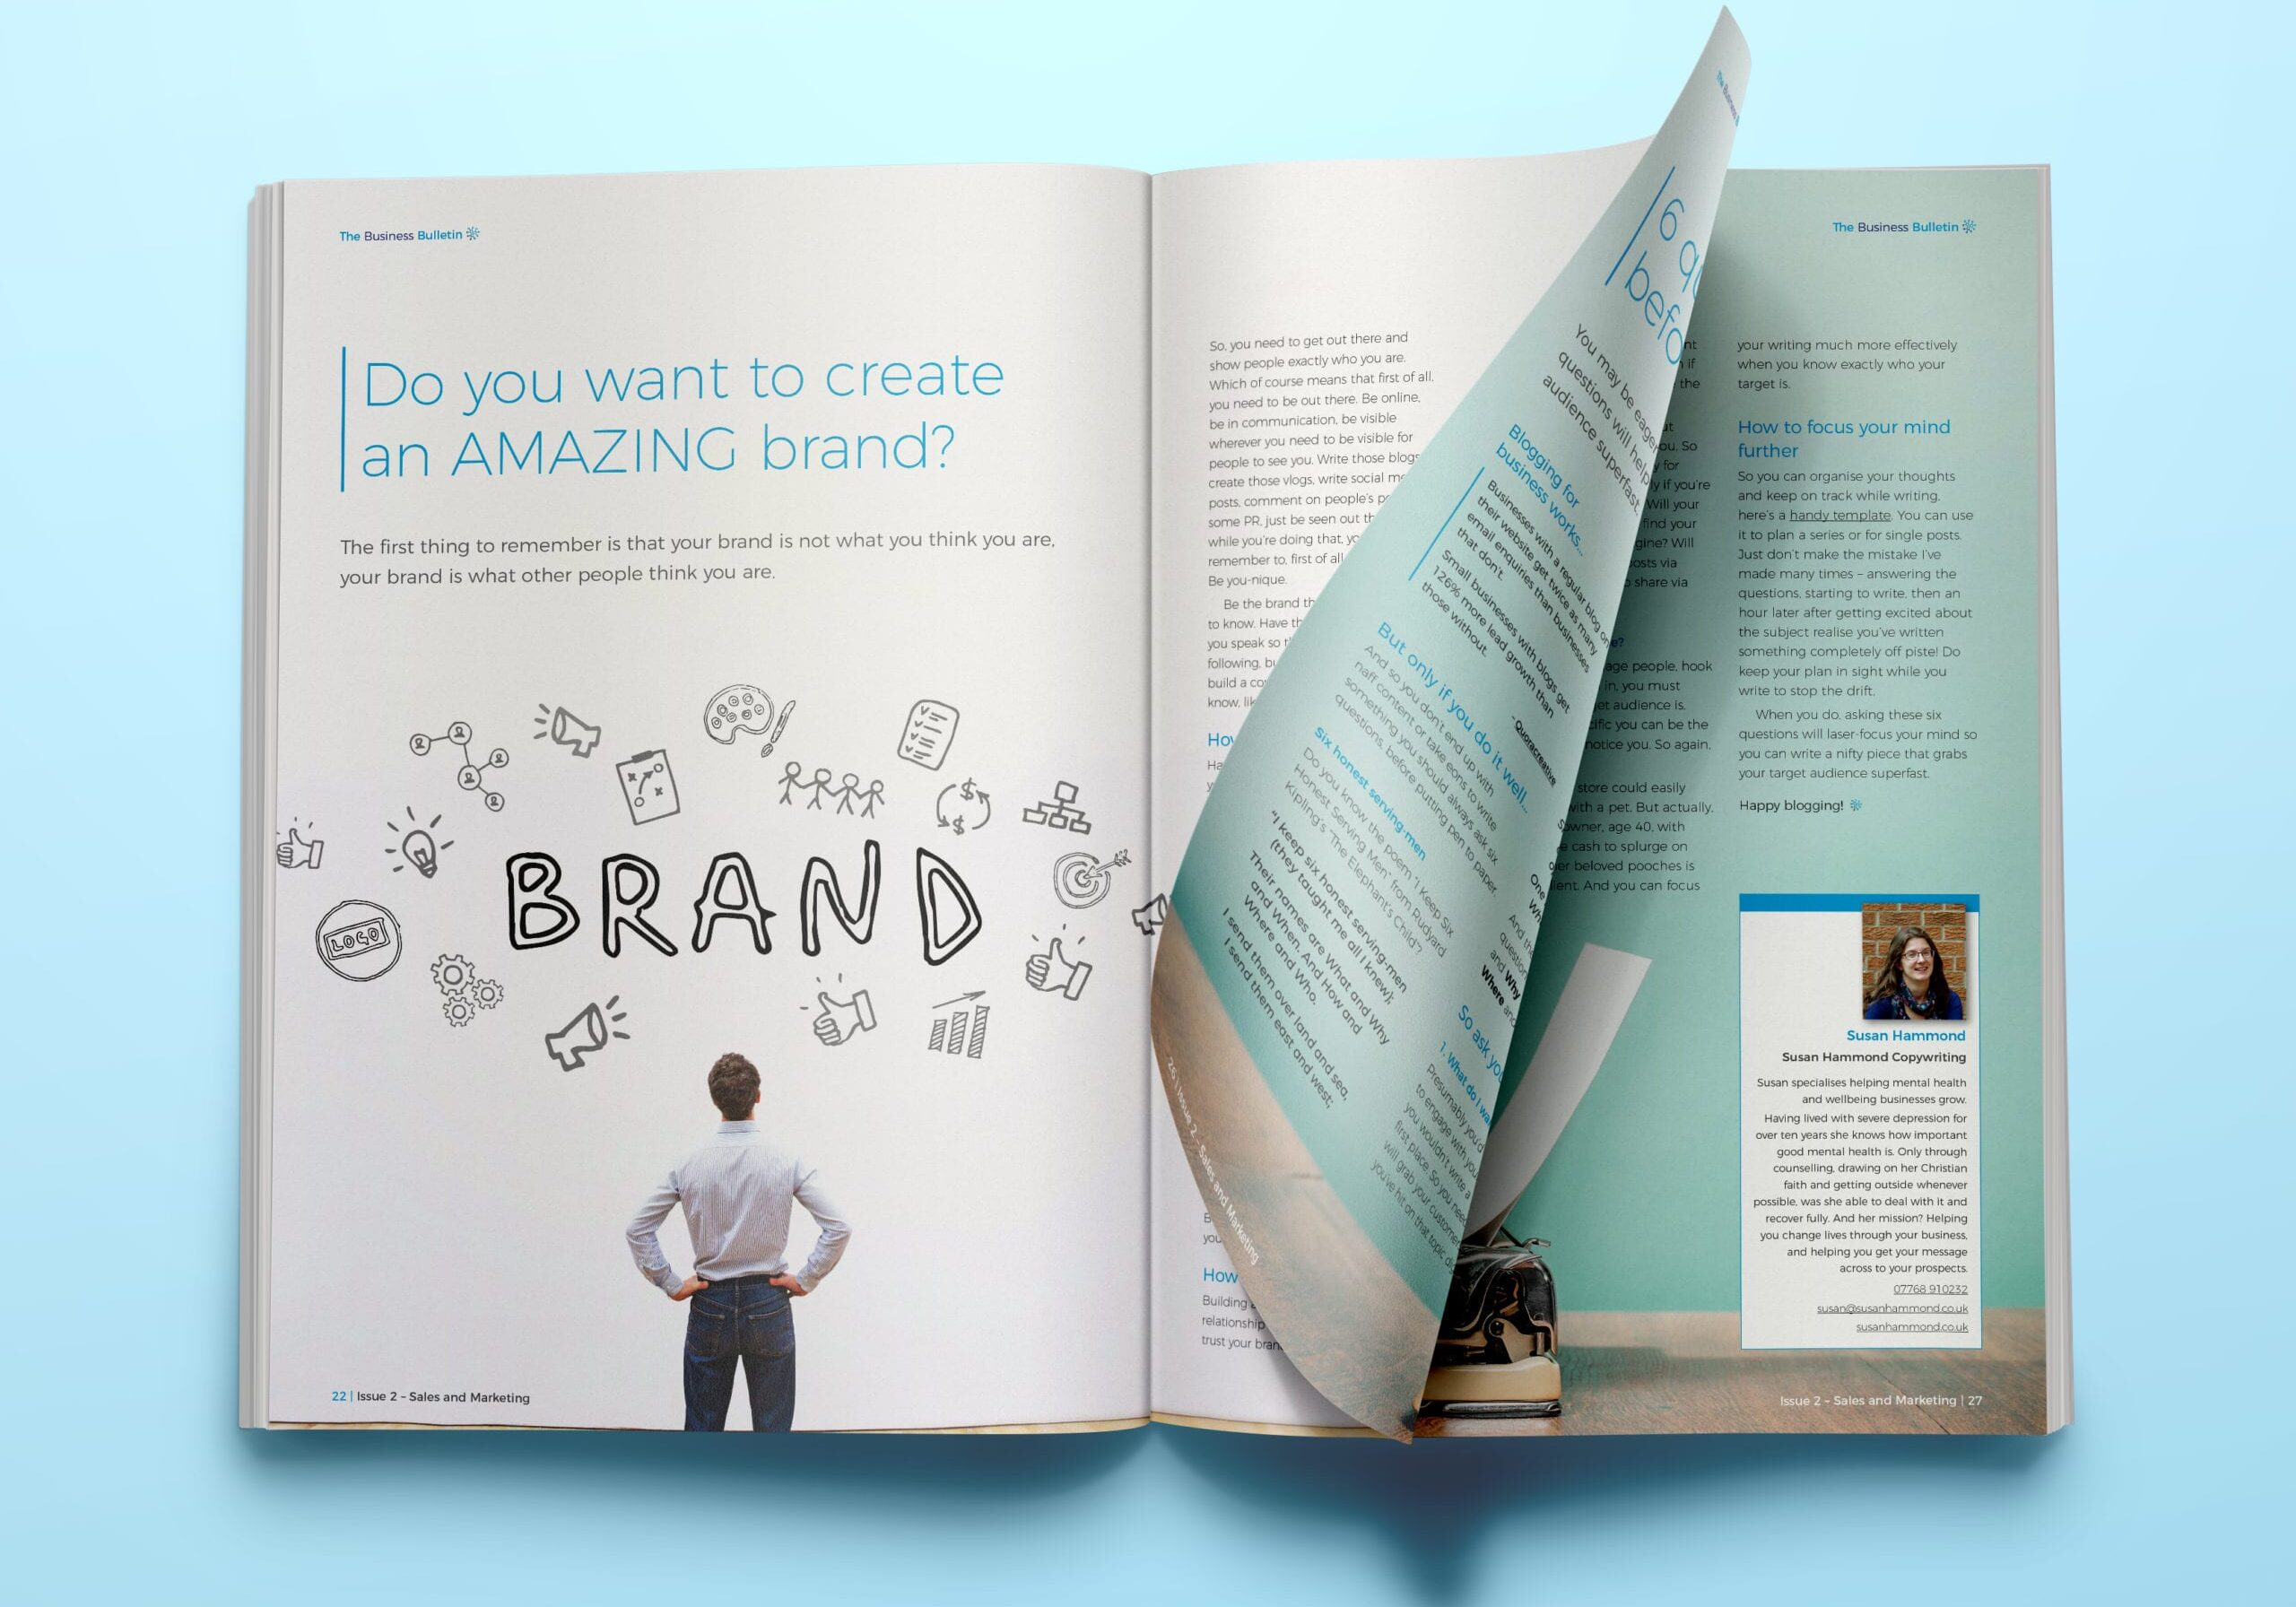 Magazine article design from Sales and Marketing issue